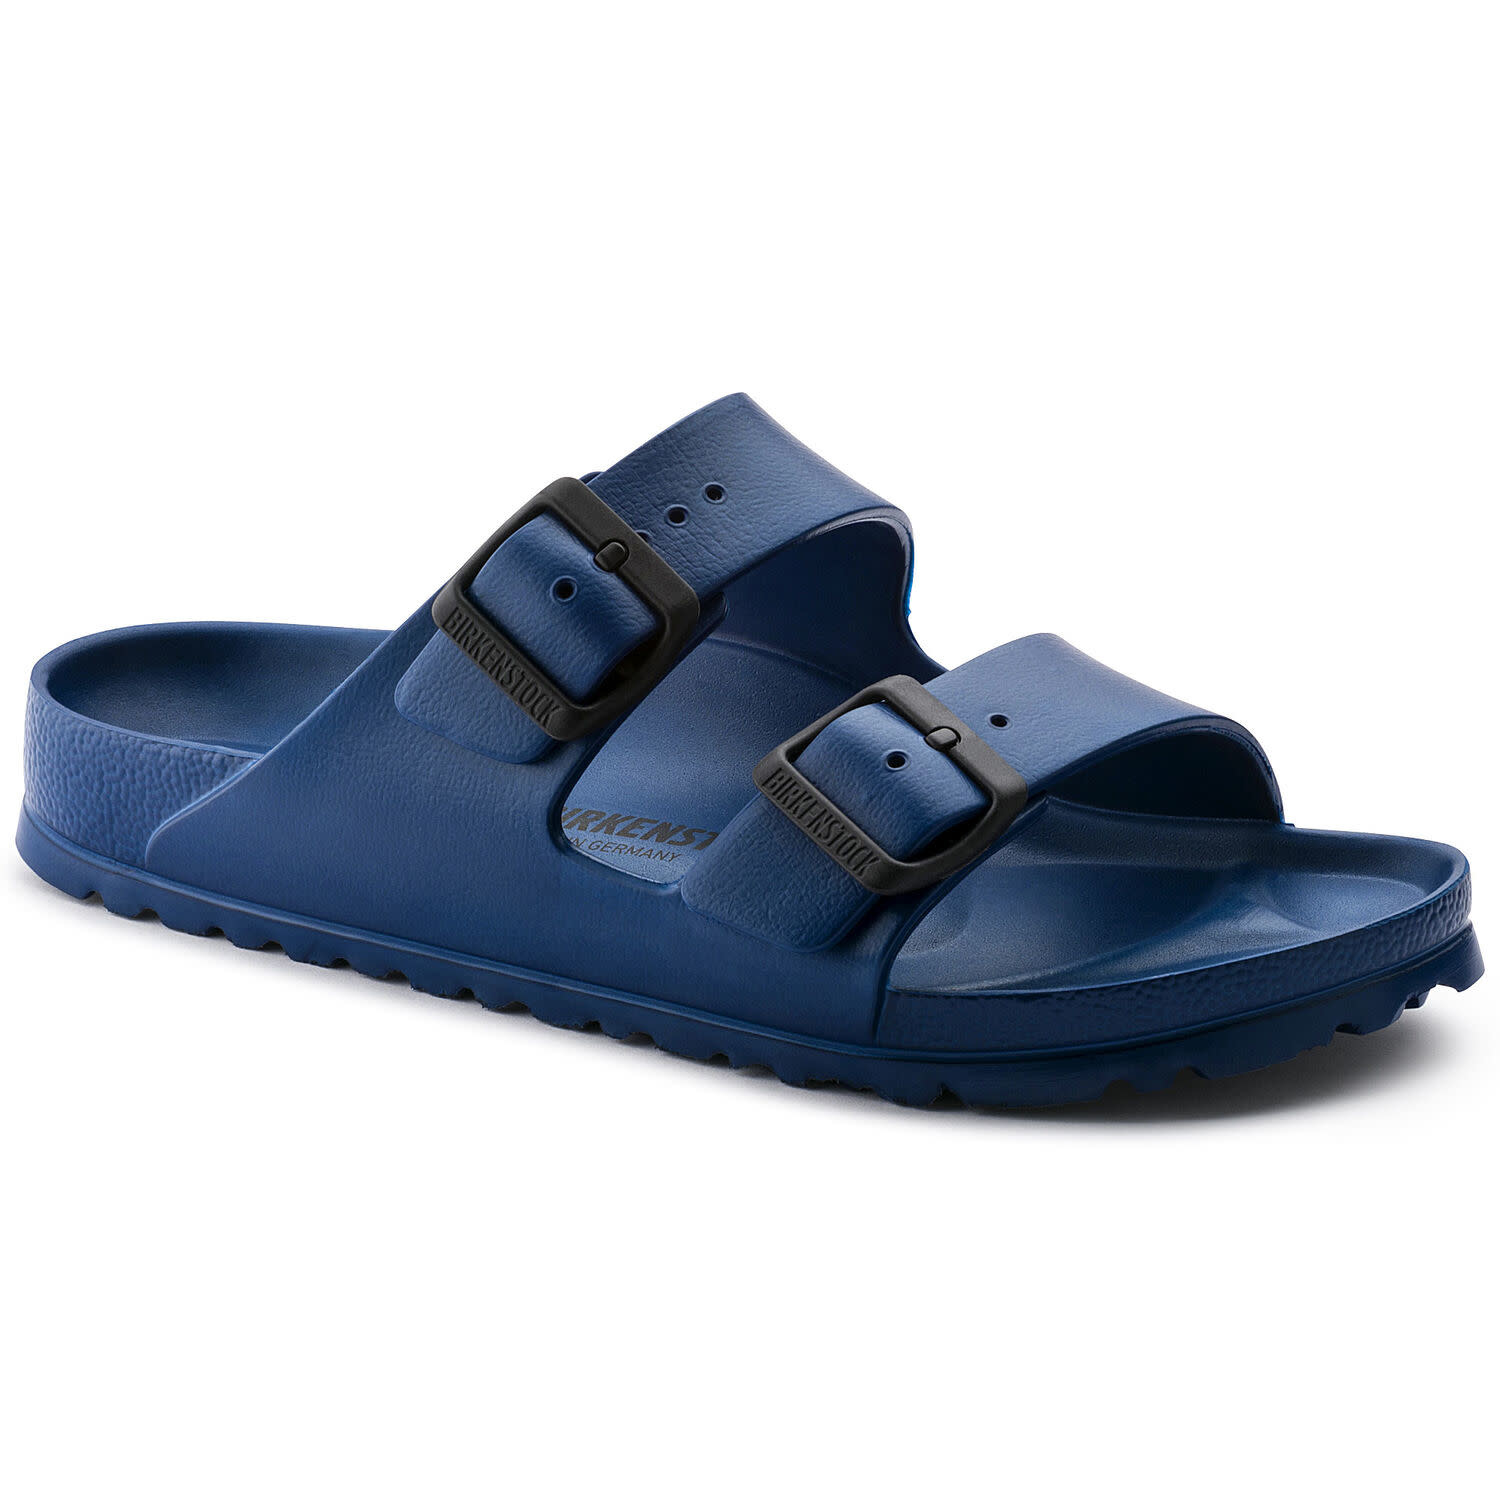 Birkenstock Birkenstock Arizona EVA (Women - Narrow) - Navy